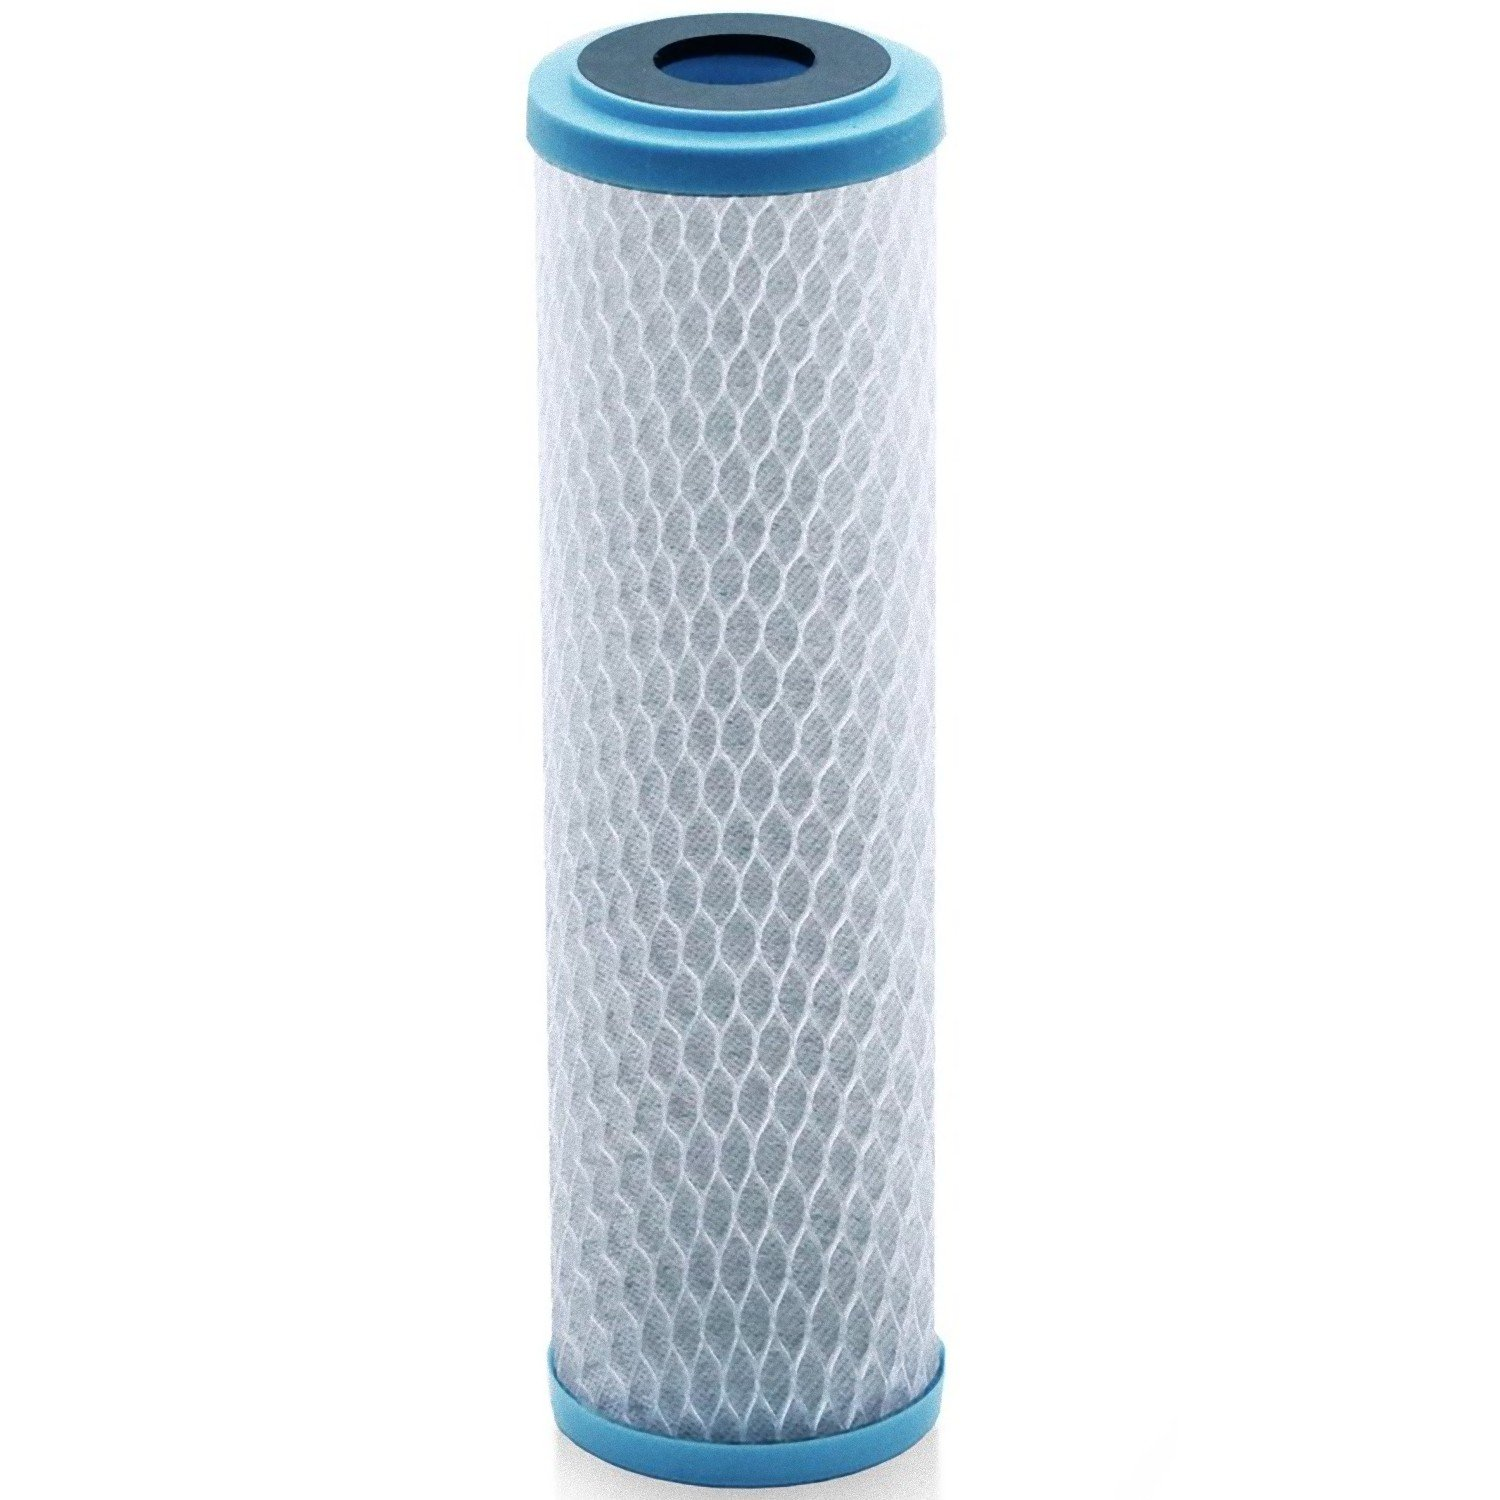 Universal KDF 55/Activated Carbon Water Filter Cartridge - 1 Micron - Replacement 10 inch CTO Water Purifier Filter, (NSF 42 Certified) (1)